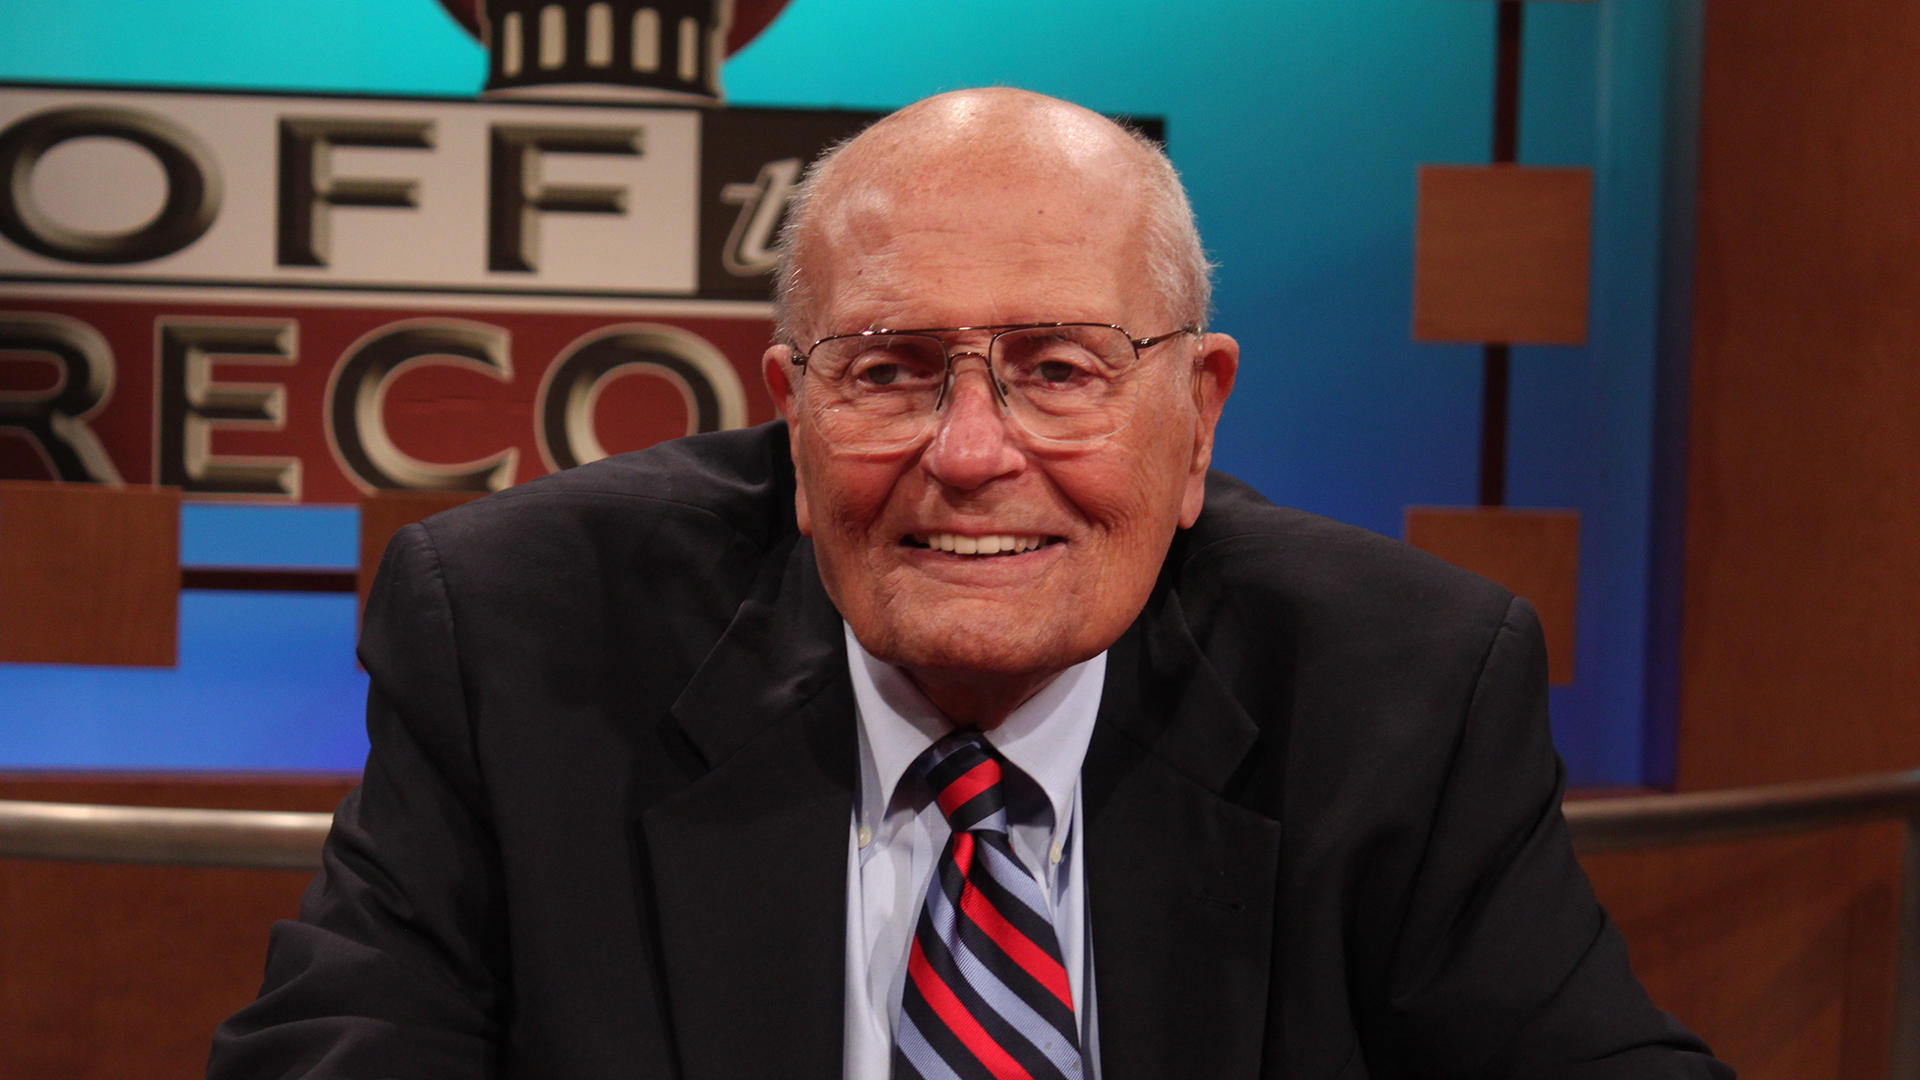 Remembering the Twitter legacy of former Michigan Rep. John Dingell